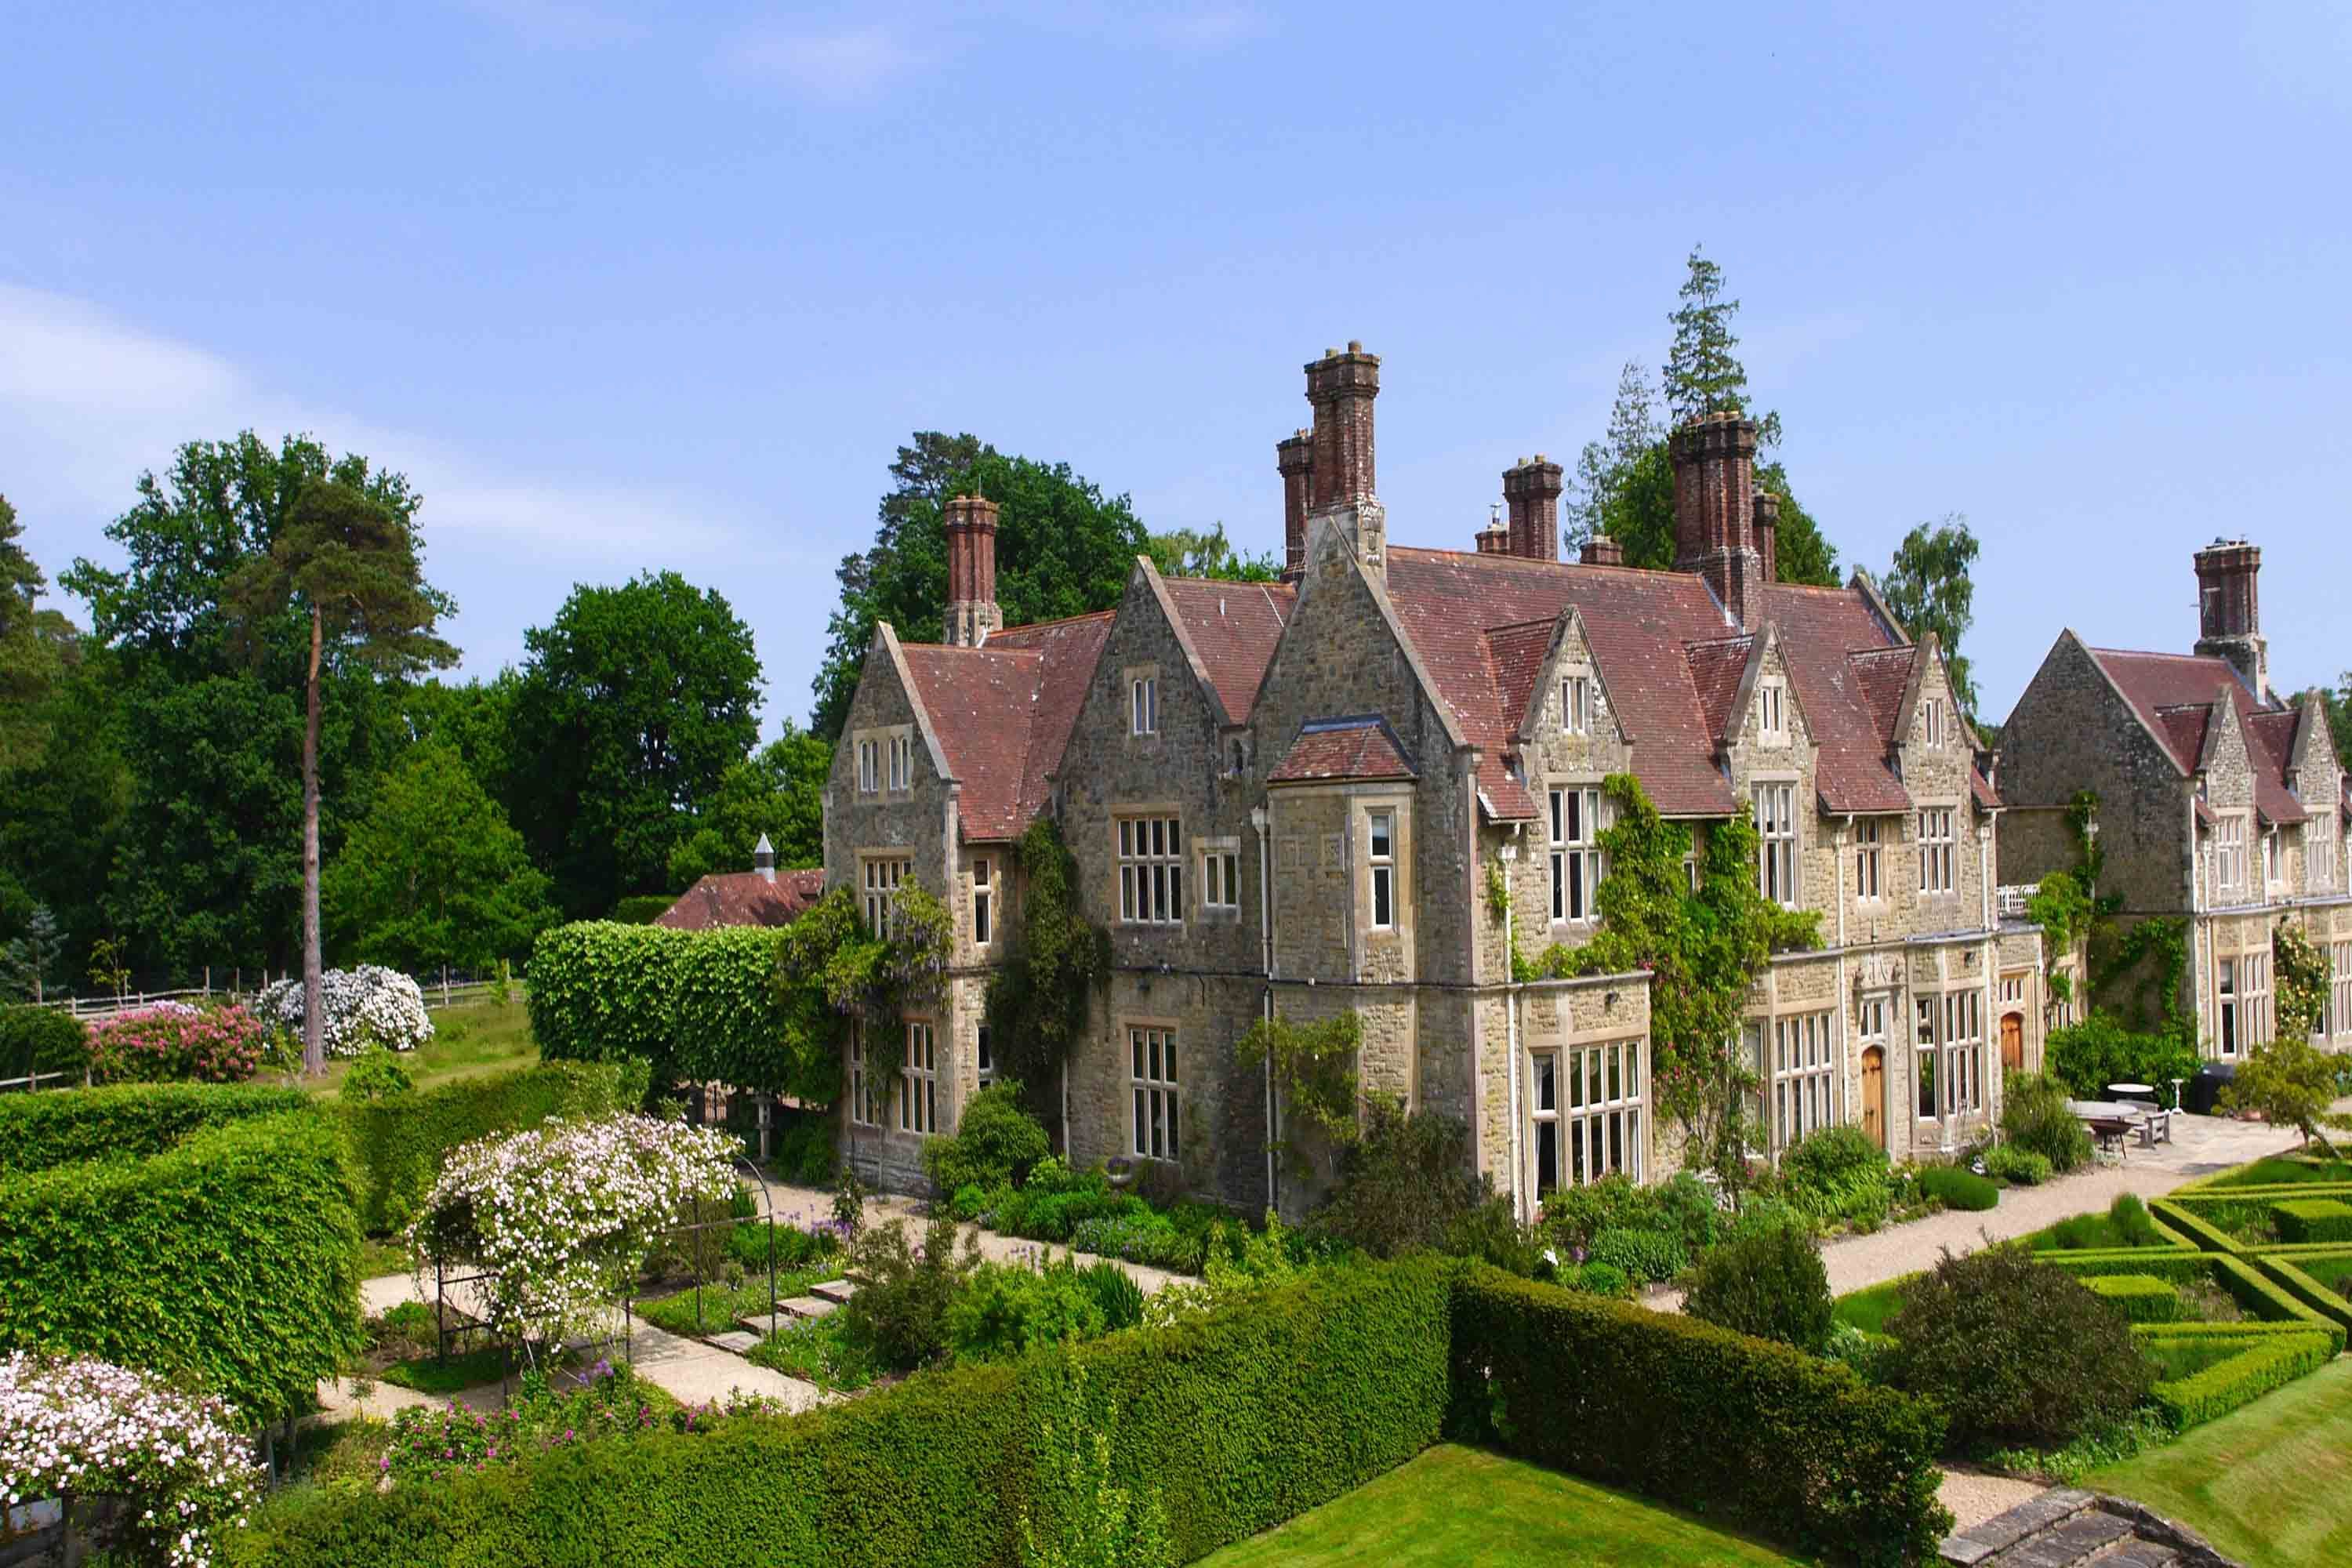 An impressive Sussex manor in the heart of the South Downs